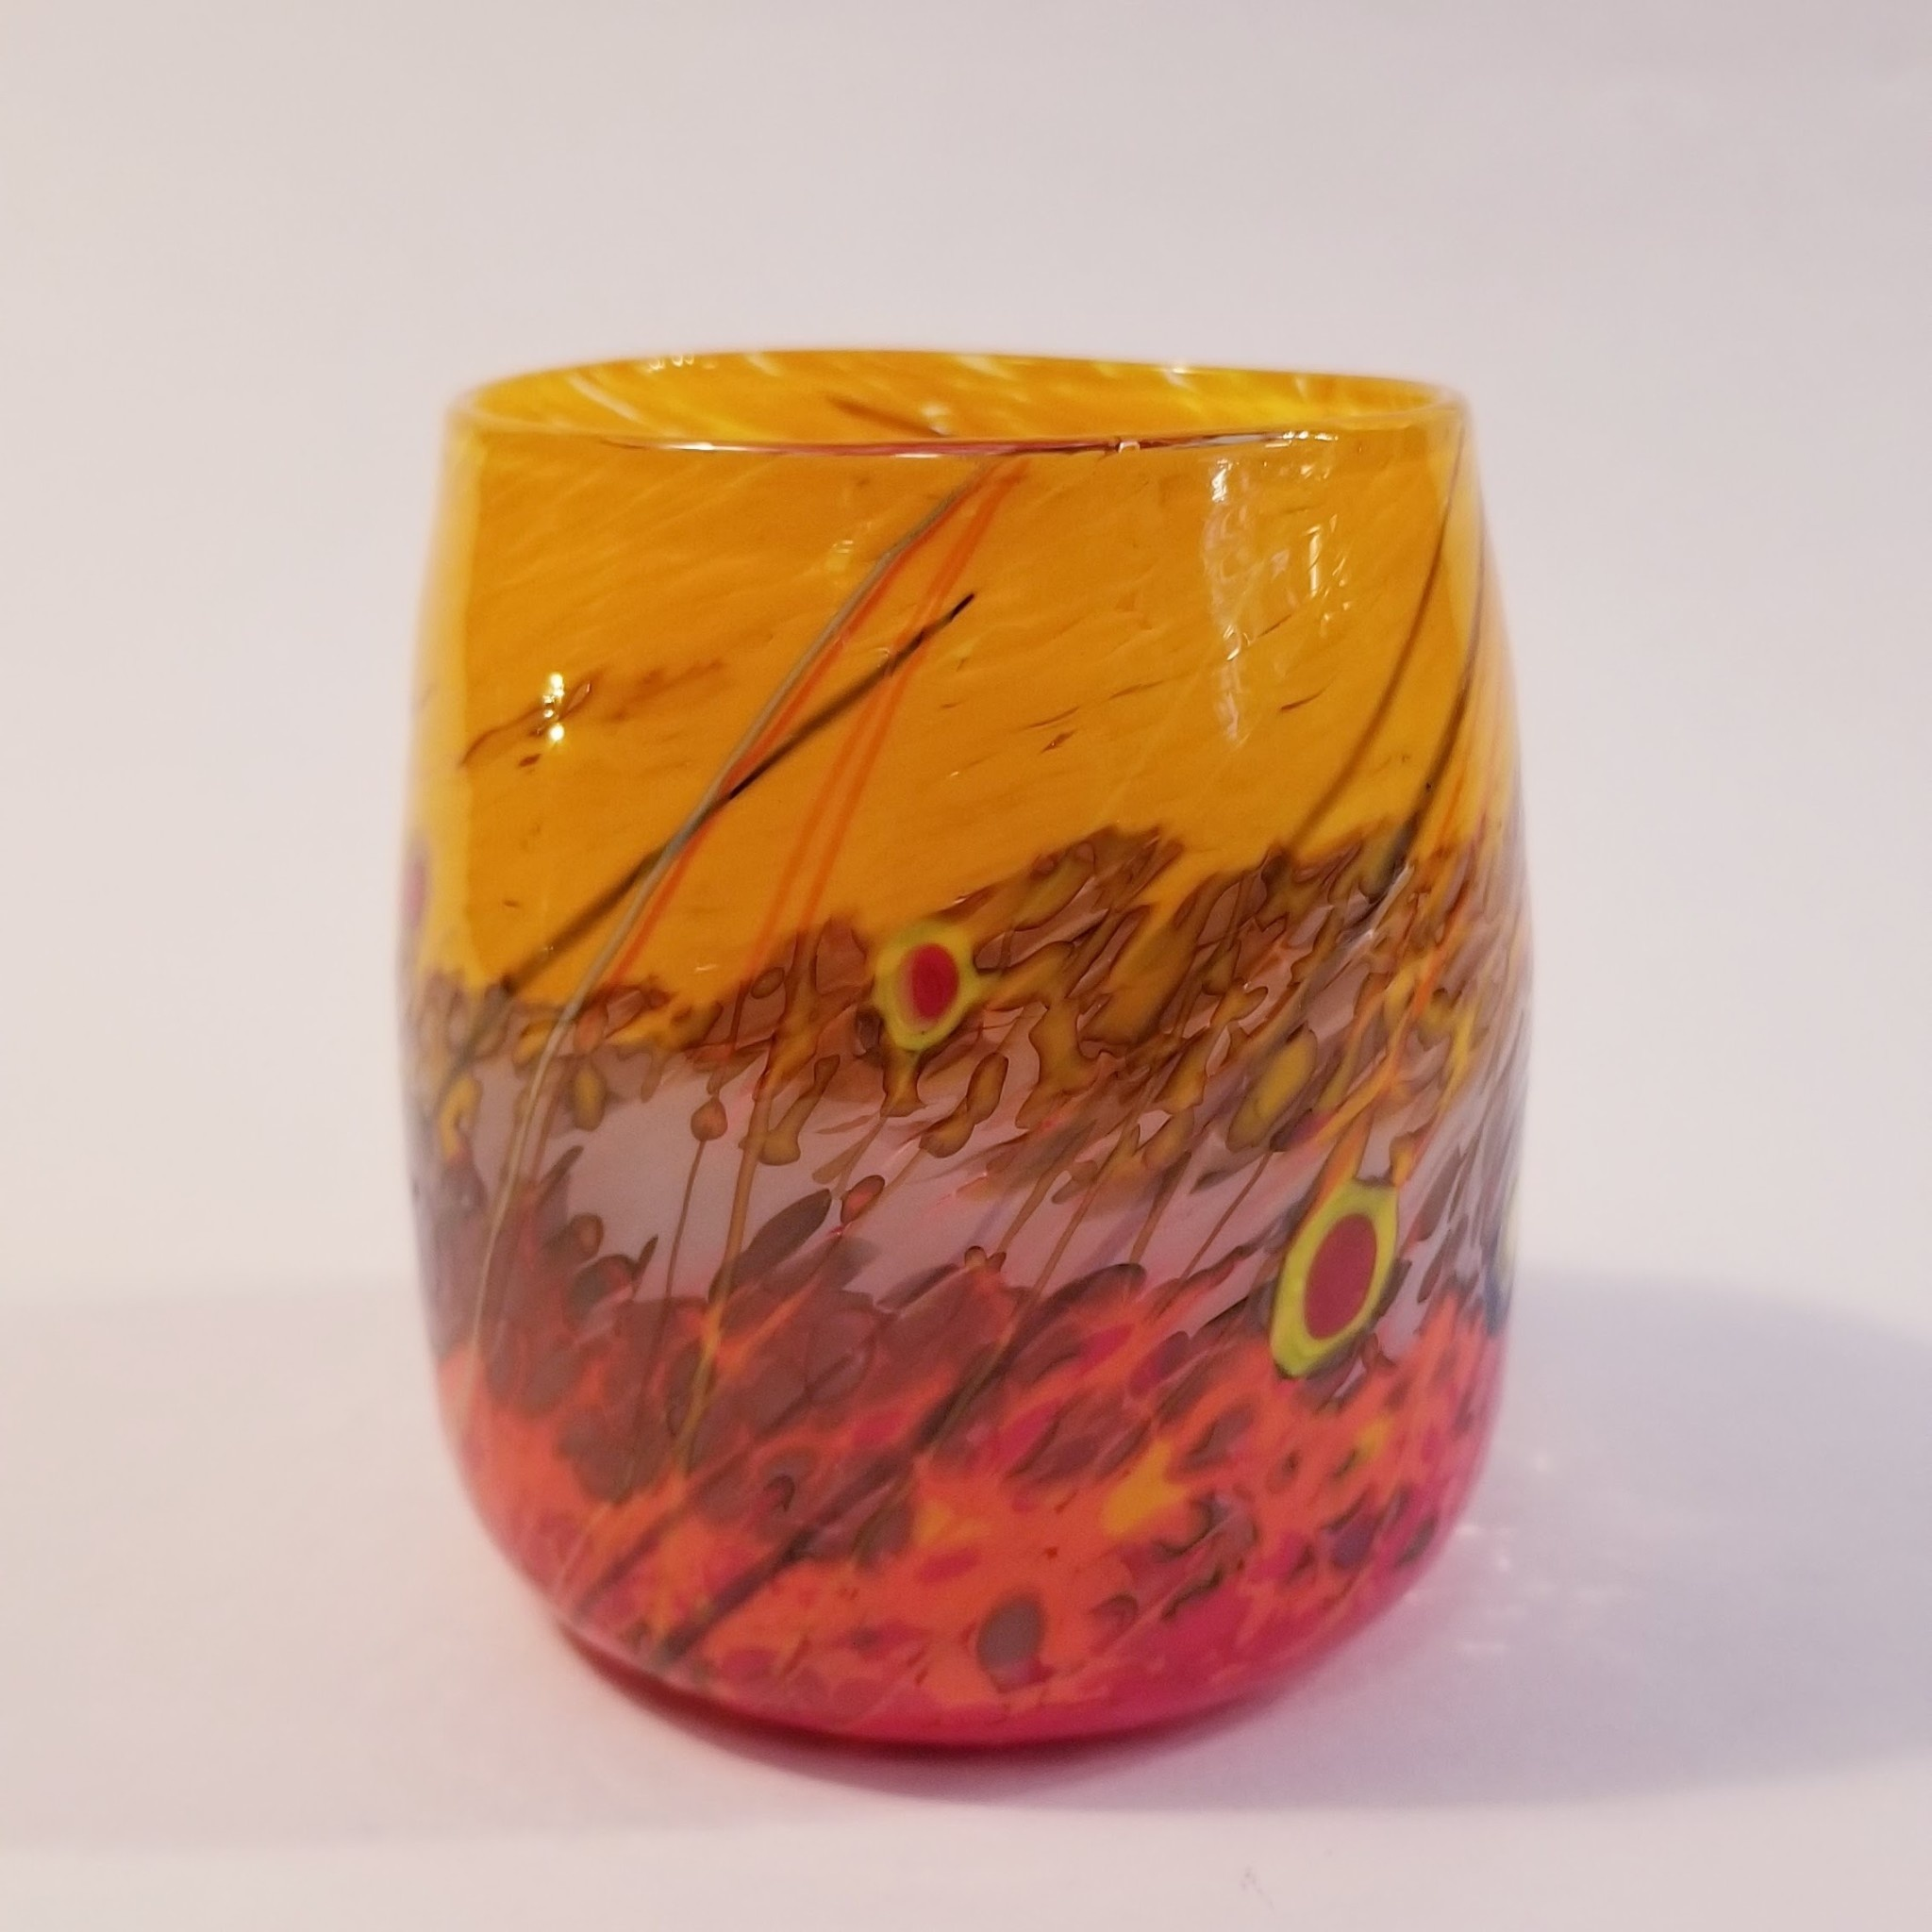 Sparrow Glassworks Forget Me Not Small Cup